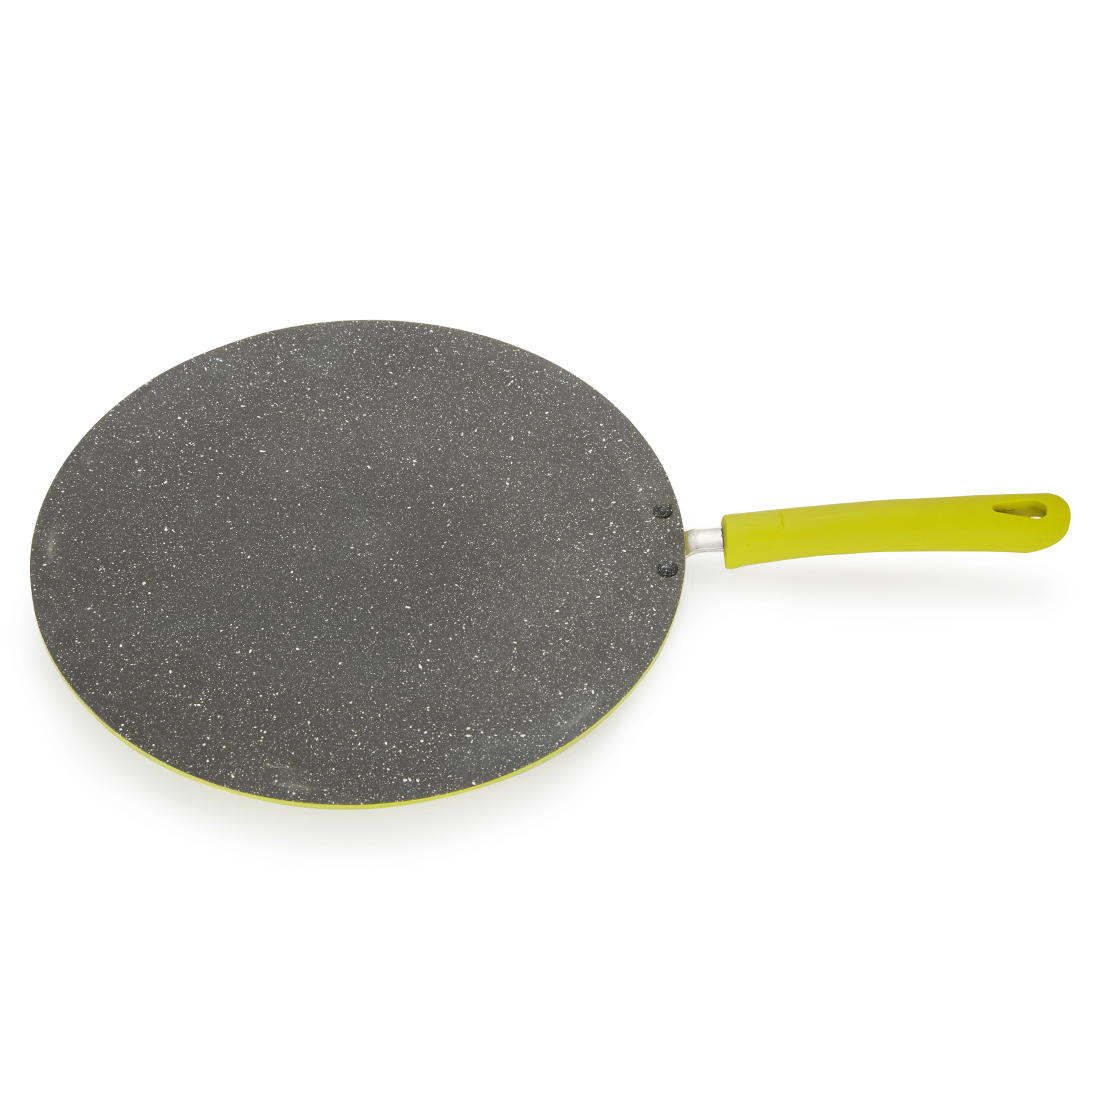 Granite Concave Tava 30Cm Green Pressed Alluminium Tawa in Green Colour by Living Essence